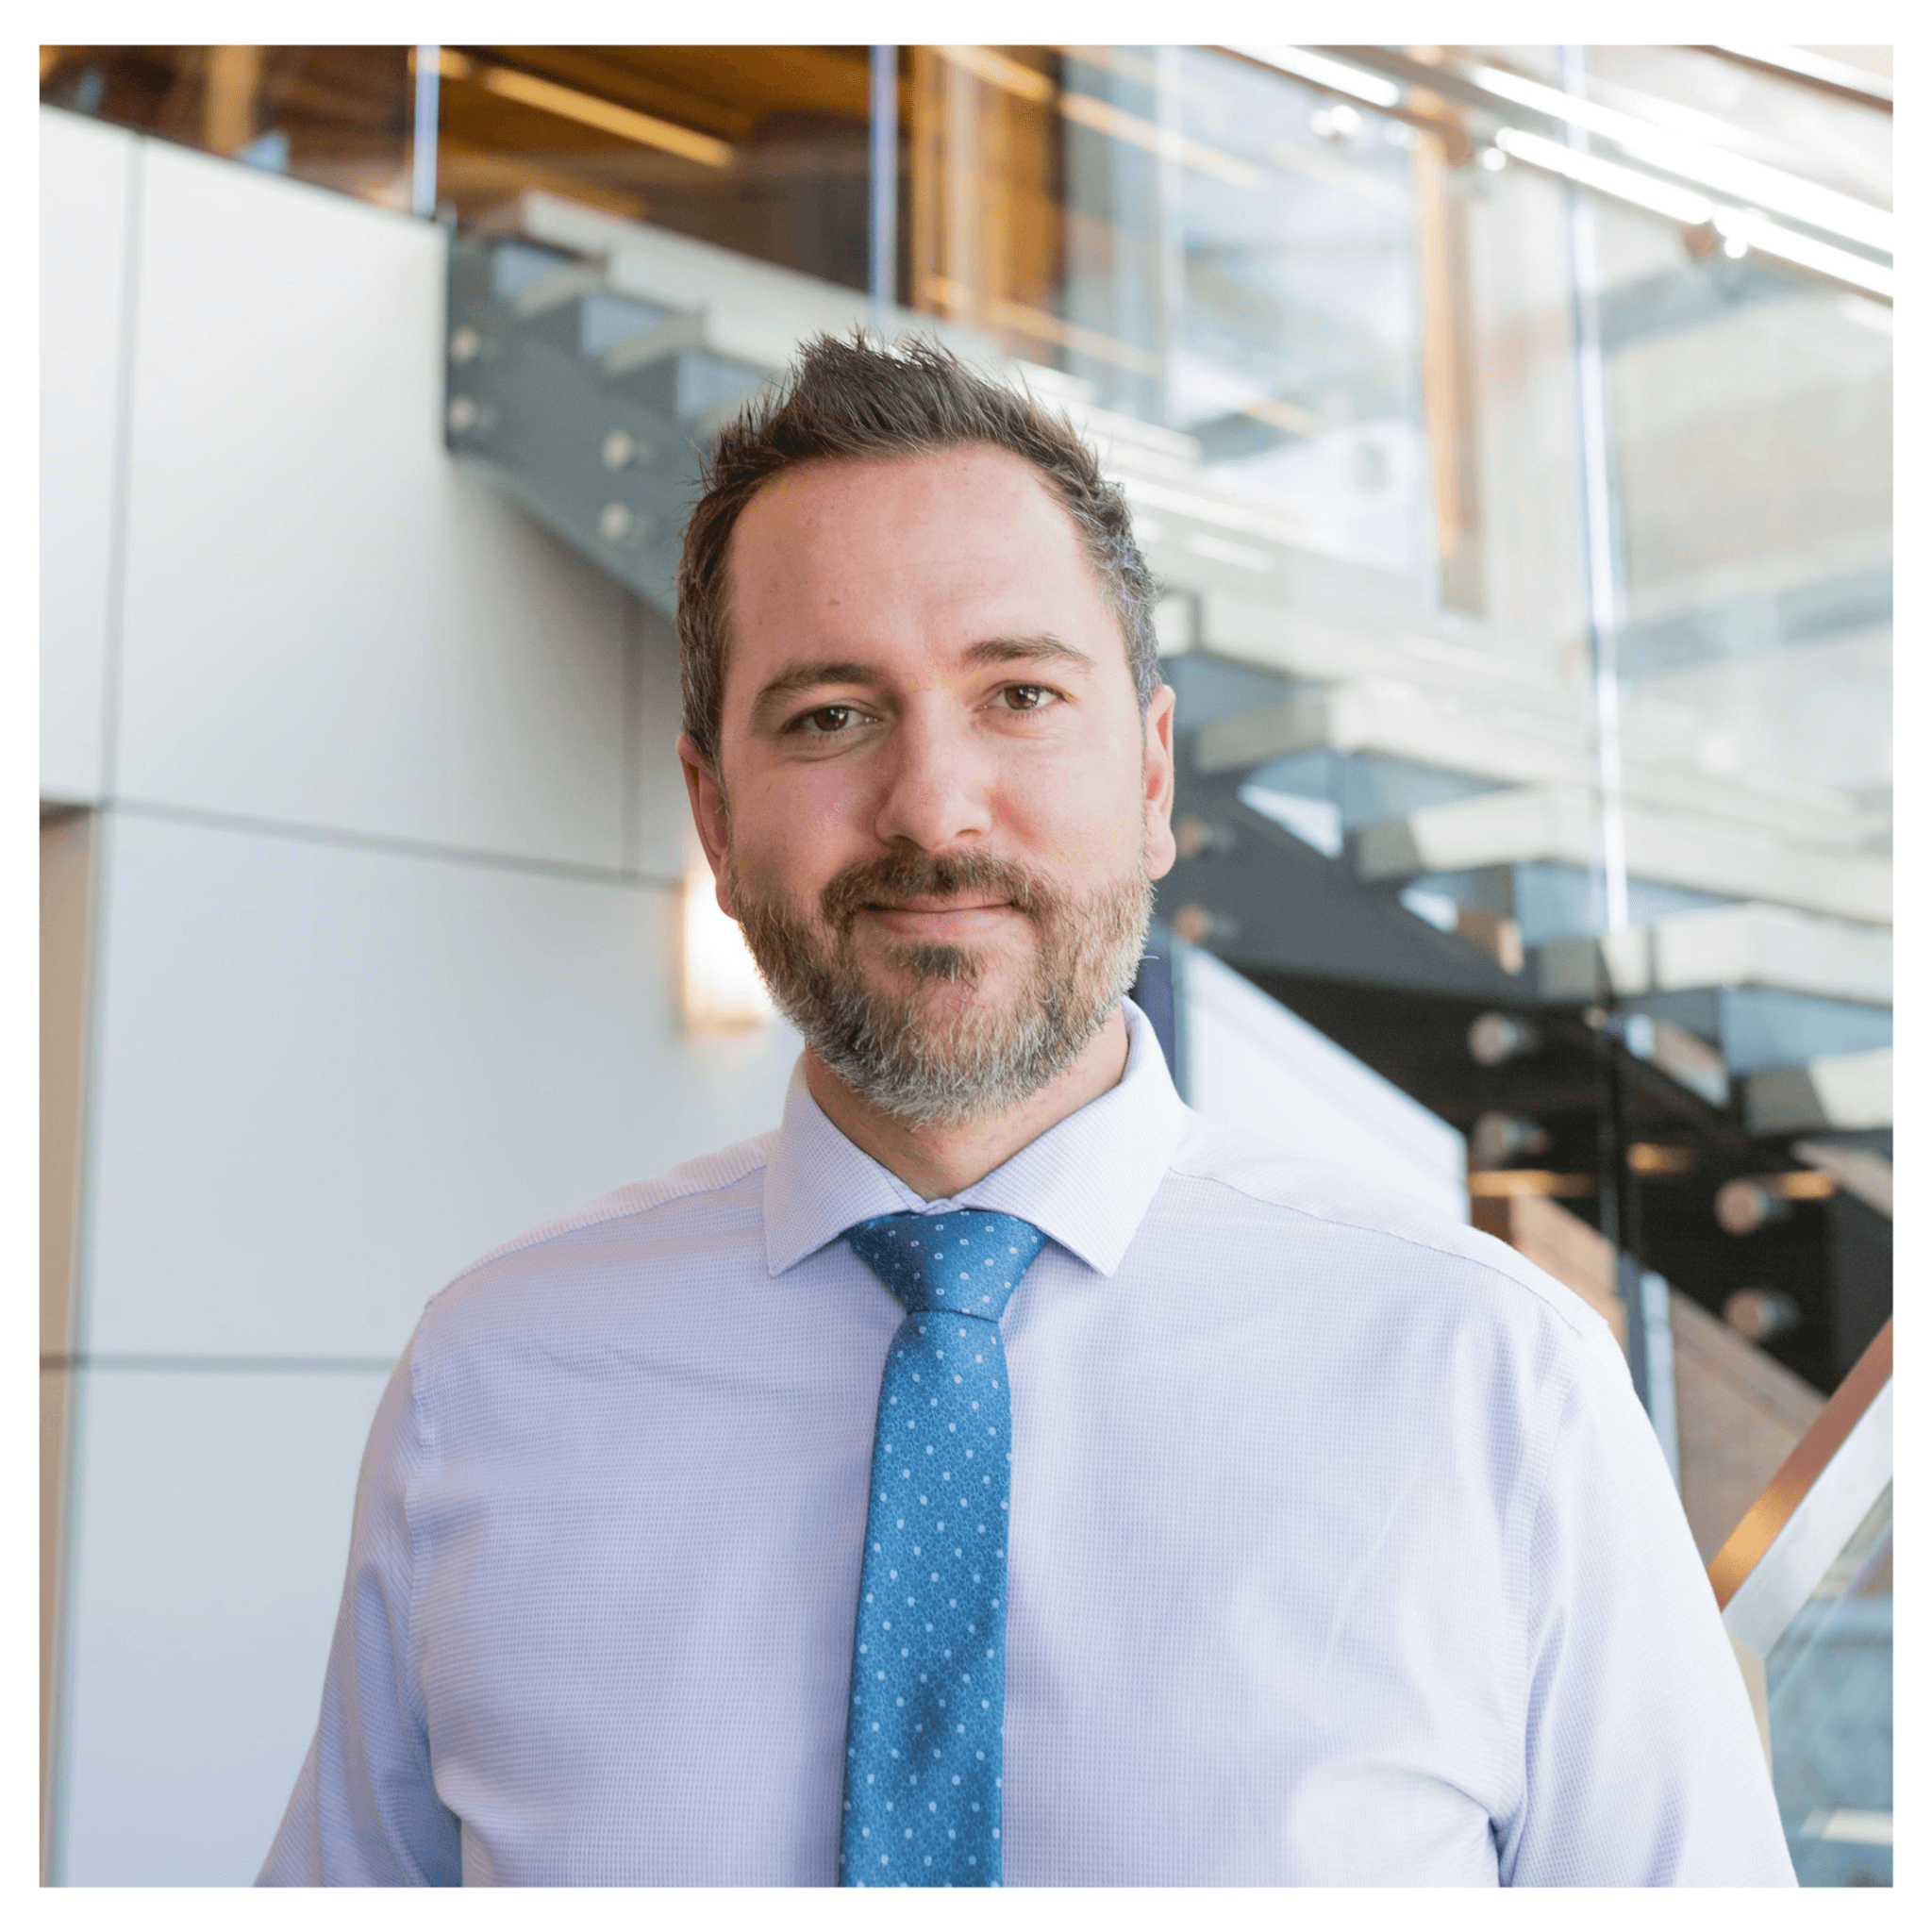 Dr. Andrew Perrin, Associate Vice President, Research, Athabasca University